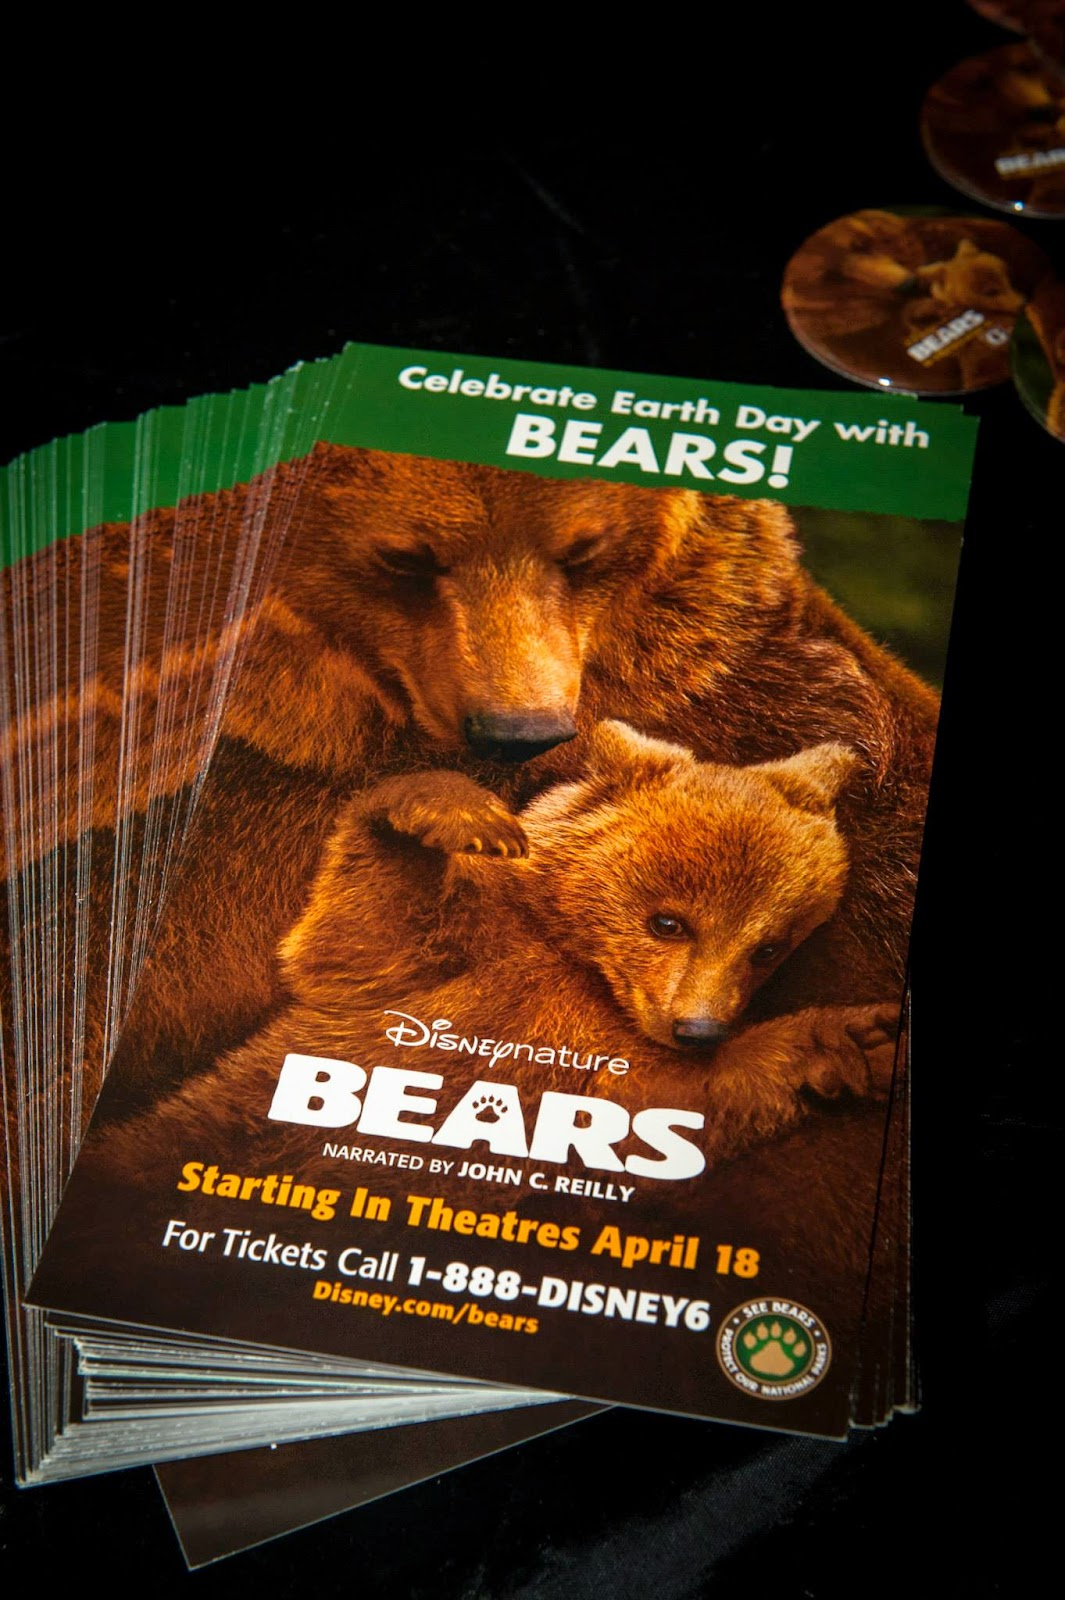 Disneynature Bears at the Disney Social Media Moms Celebration 2014